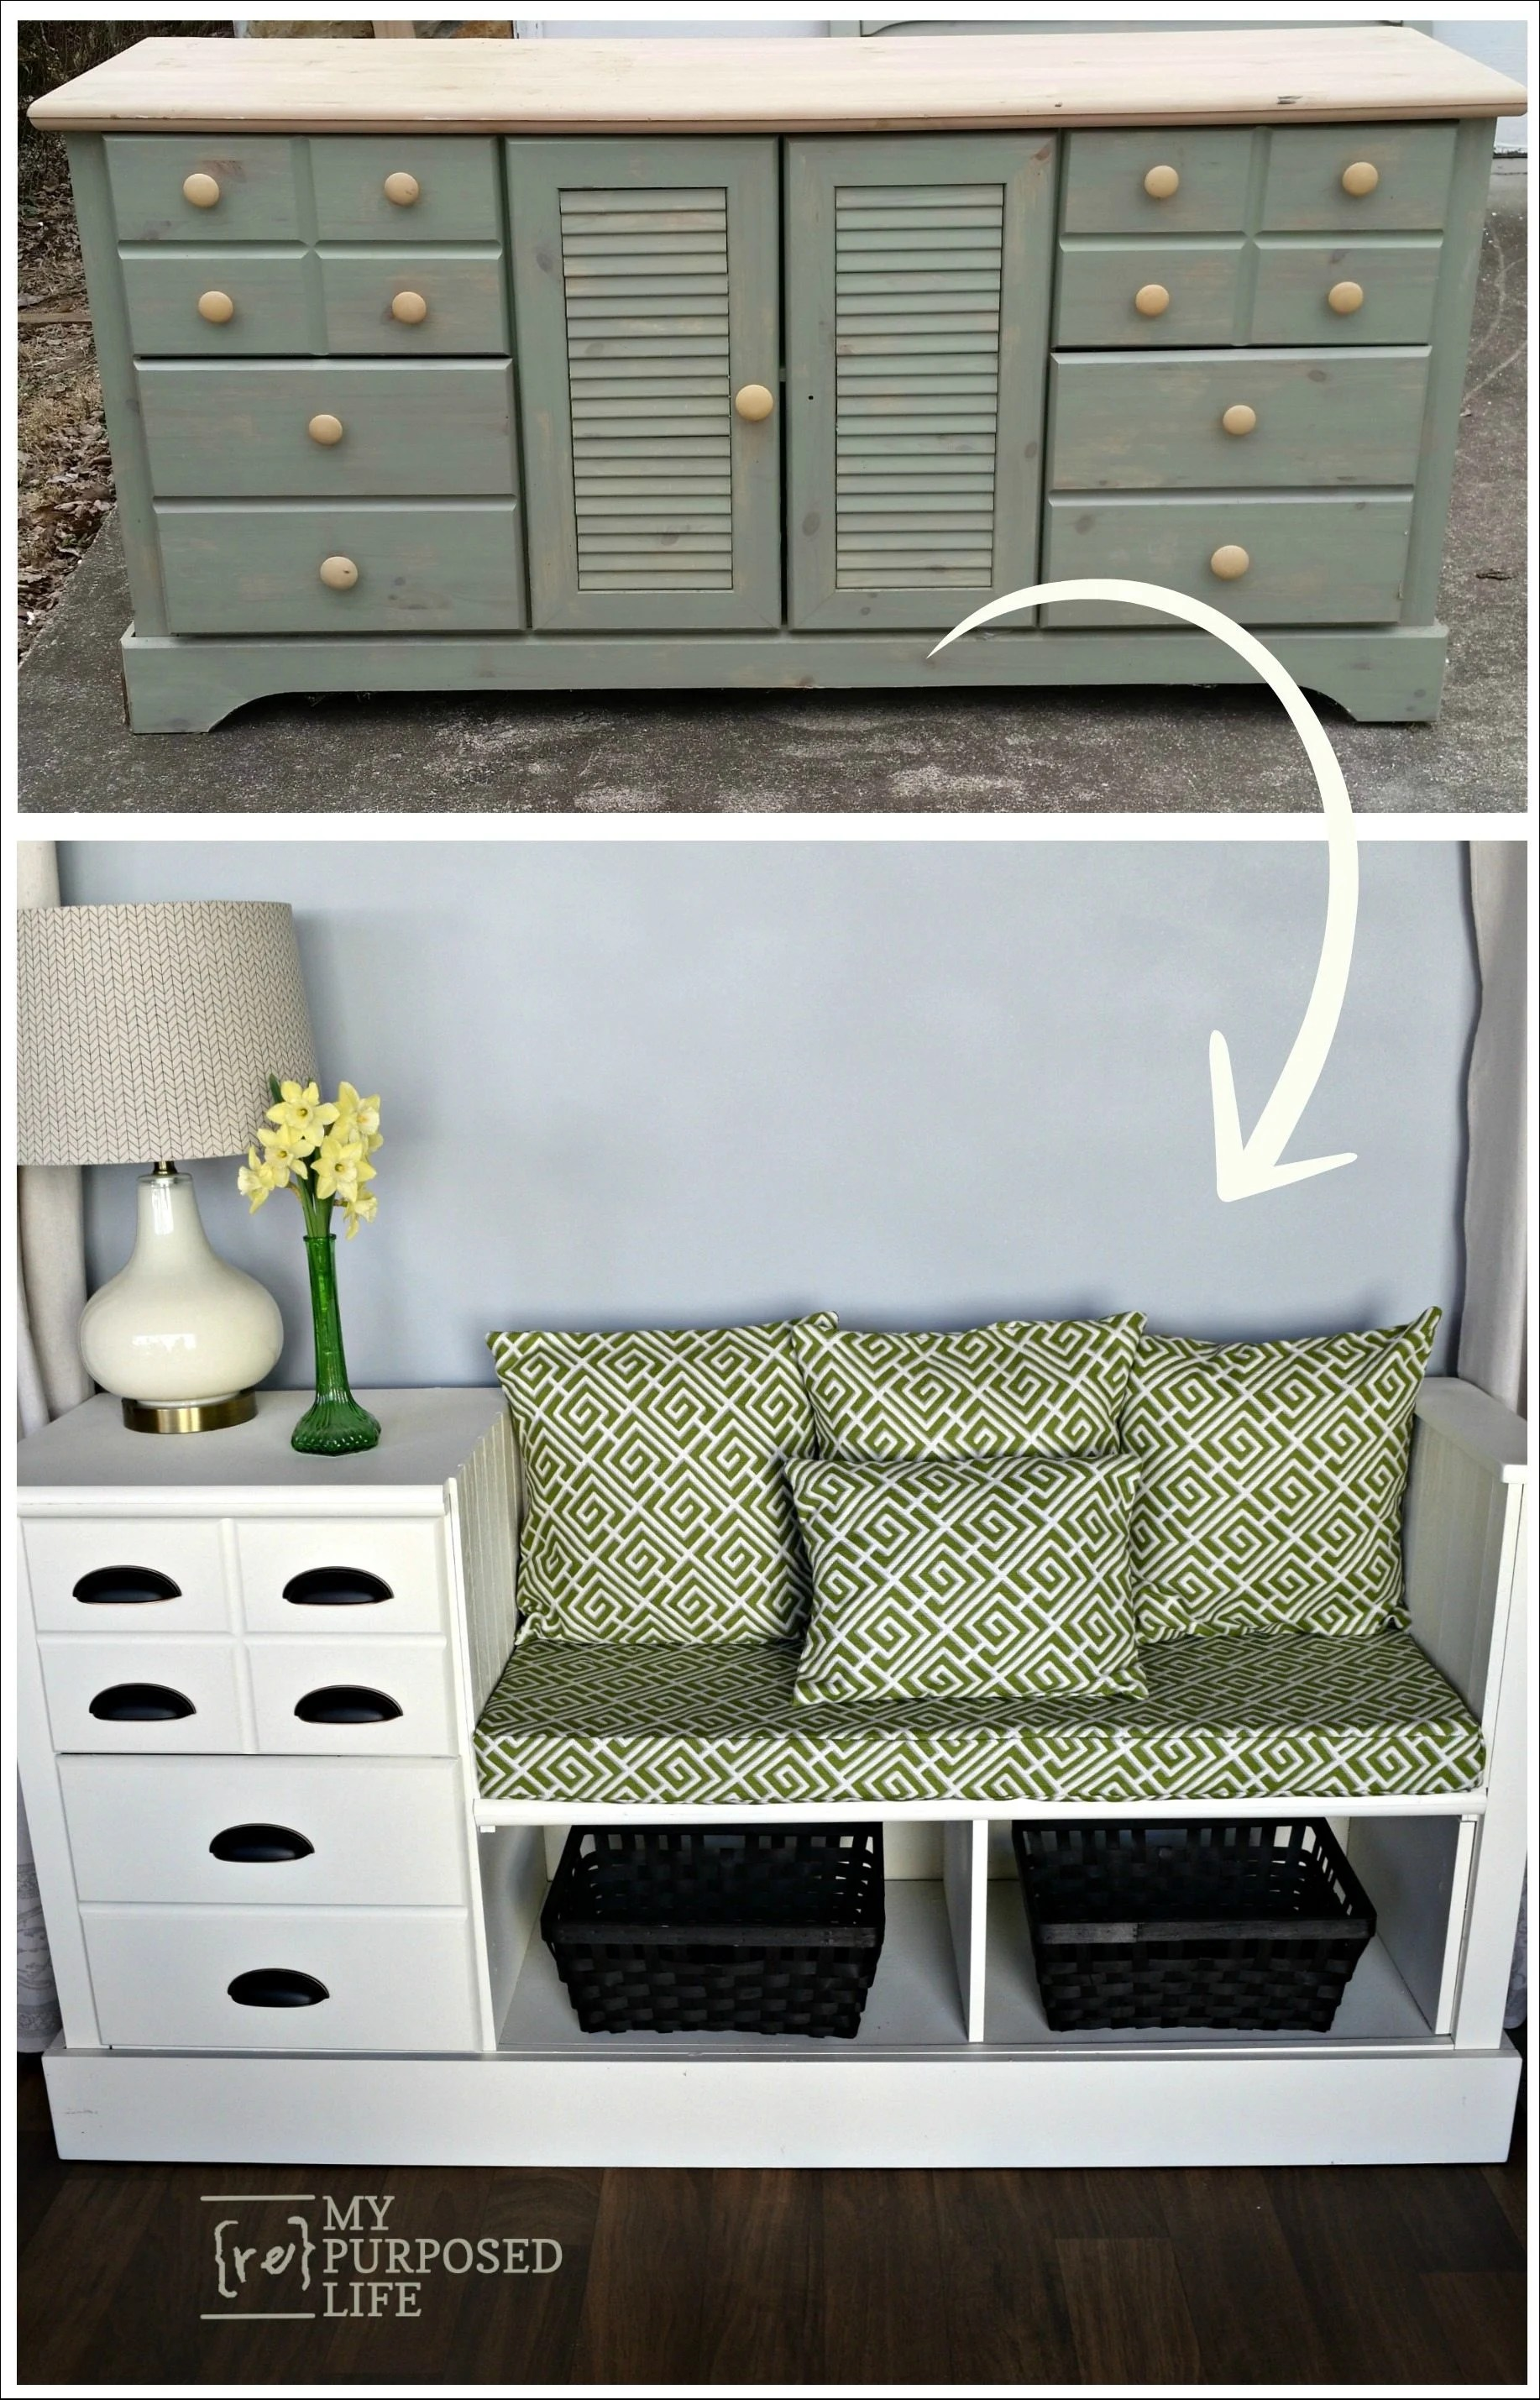 Repurposed Furniture Ideas Bench Bench Made From Dresser My Repurposed Life Repurposed Furniture Old Dresser Ideas And Makeovers My Repurposed